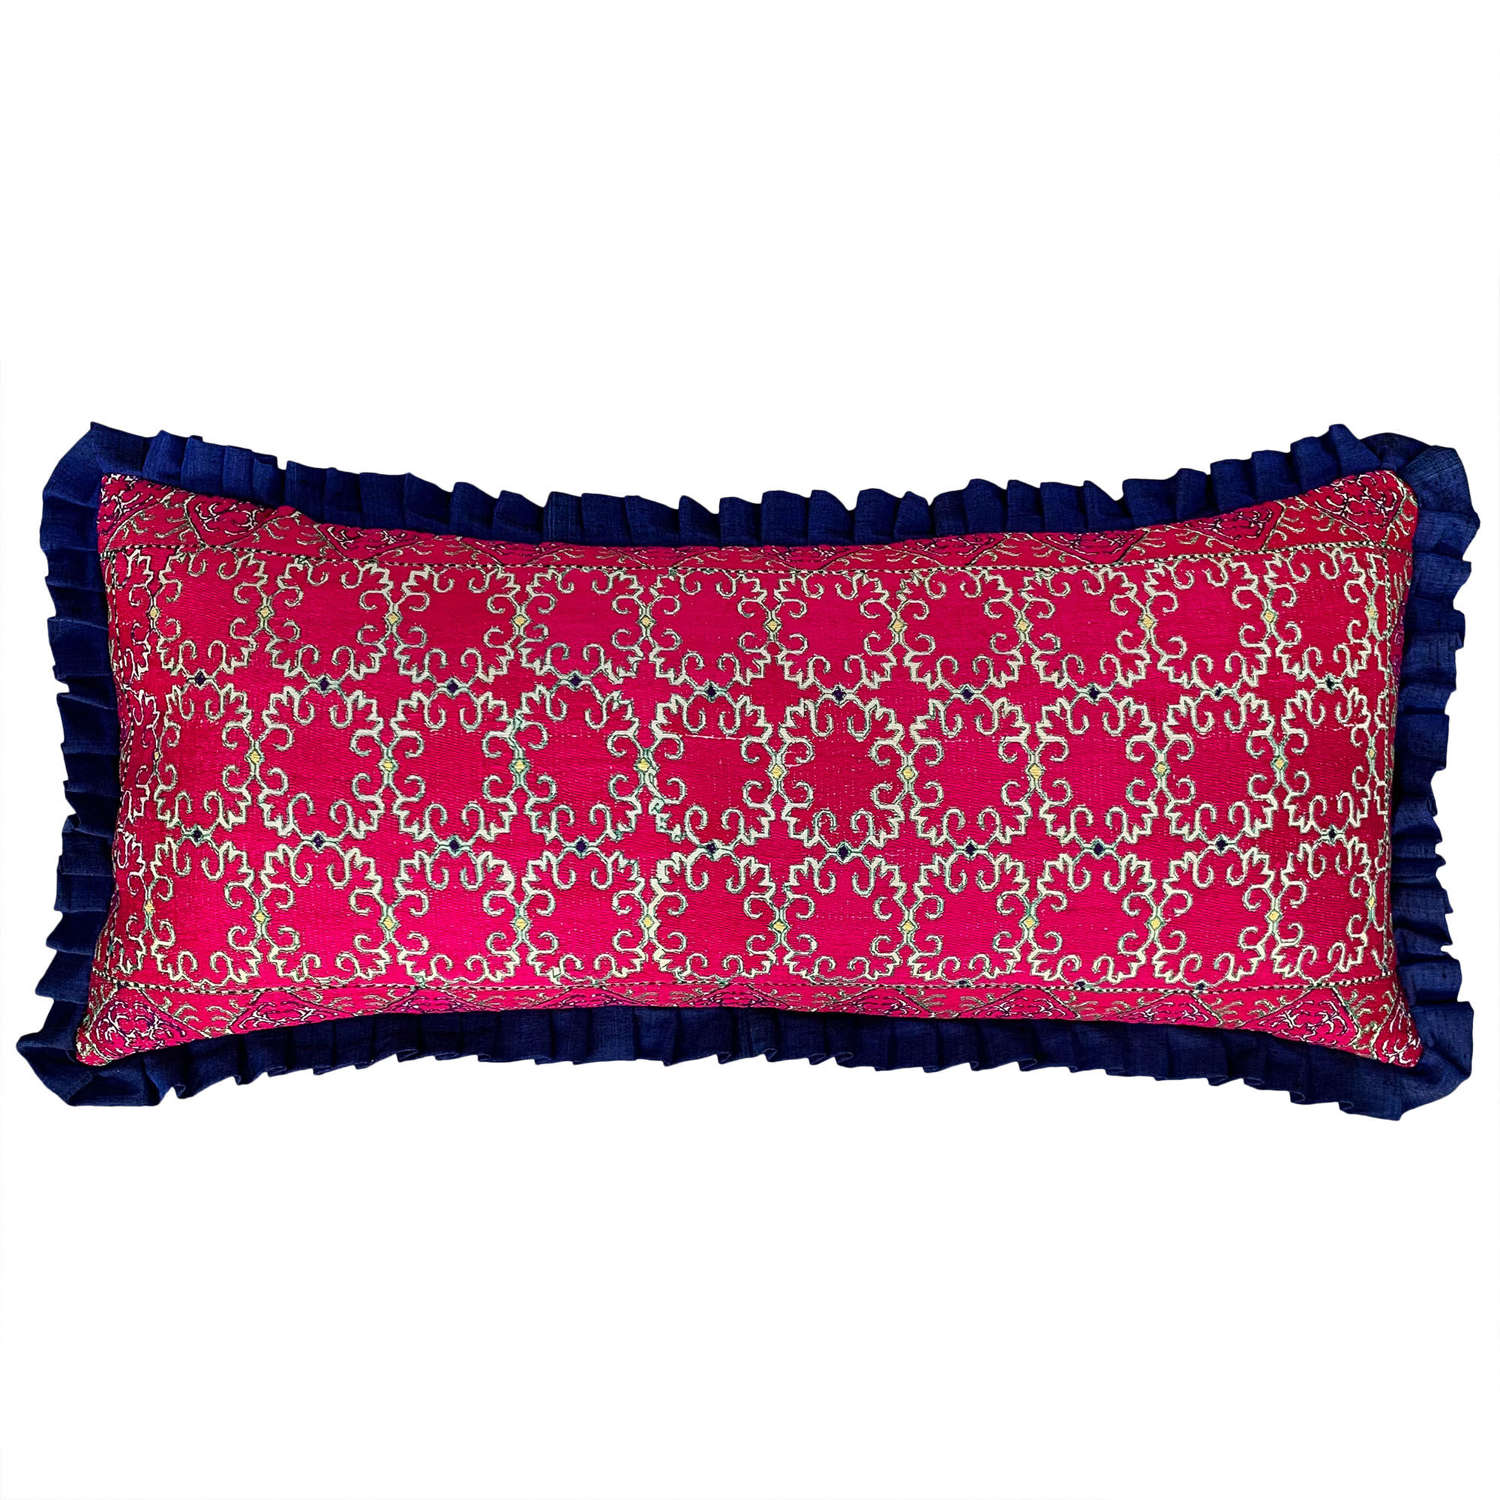 Swat pillow with pleated silk trim